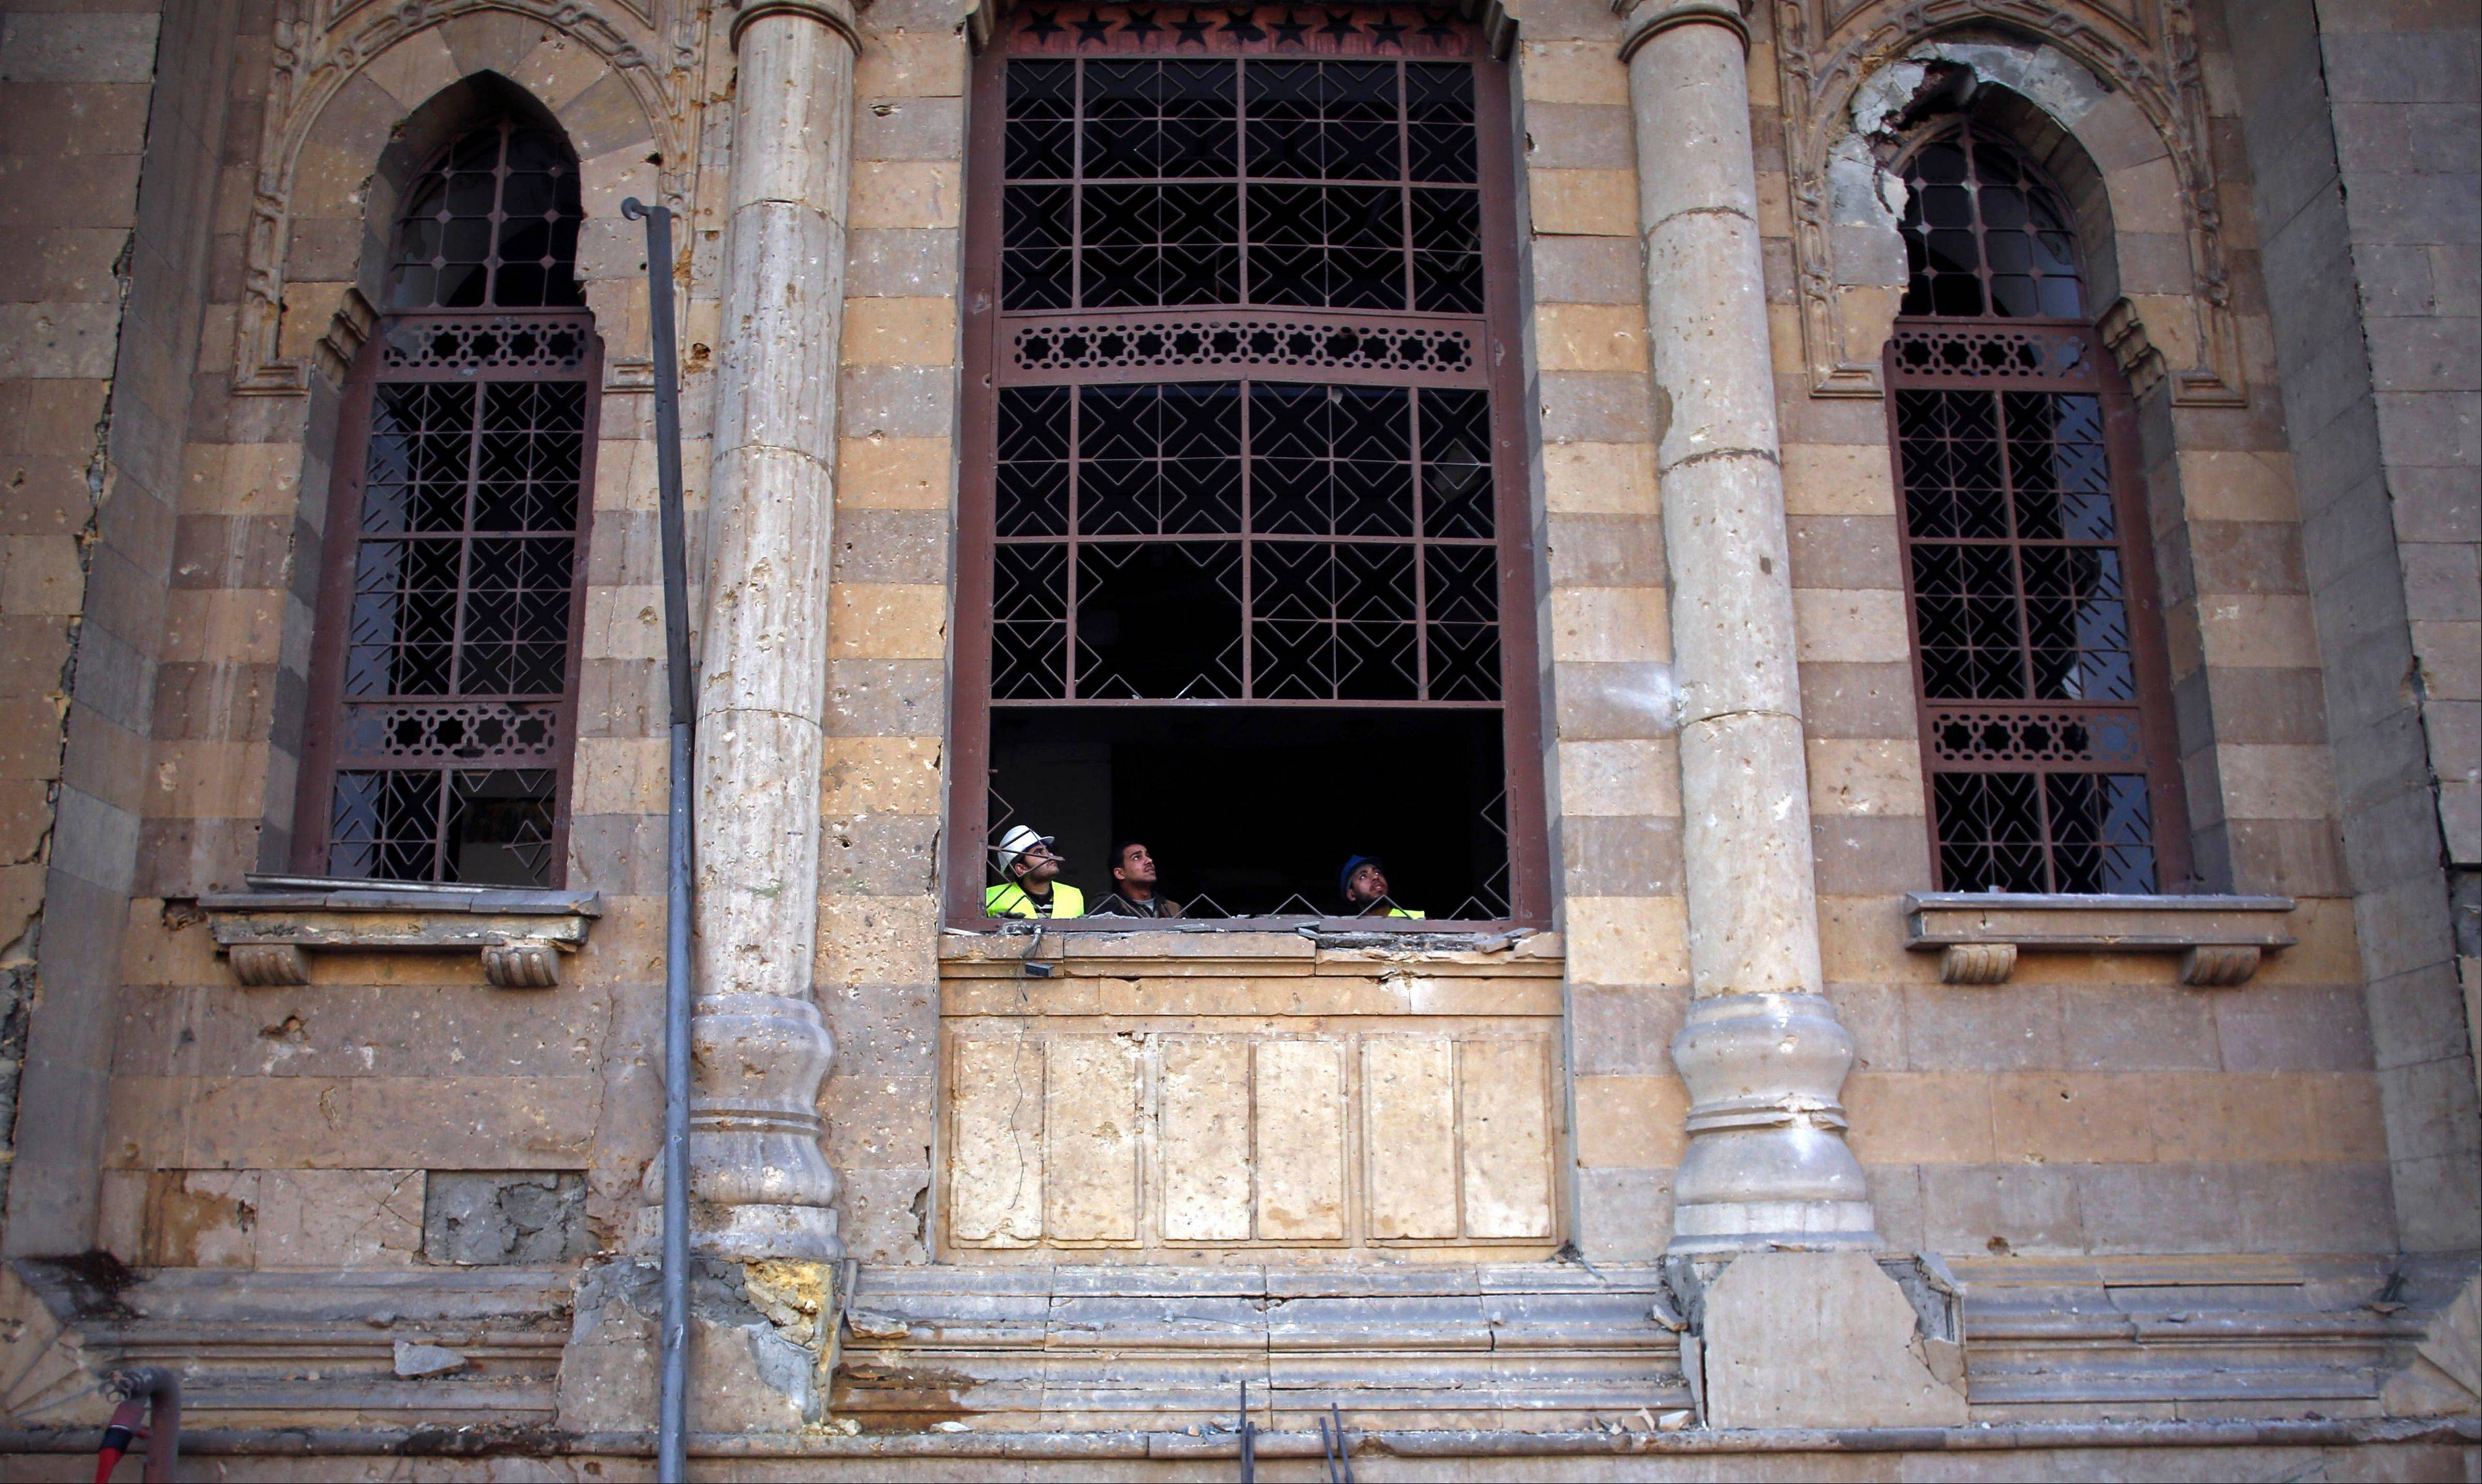 Egyptian workers peer Friday from the window of the damaged Museum of Islamic Art after an explosion at the Egyptian police headquarters in downtown Cairo.